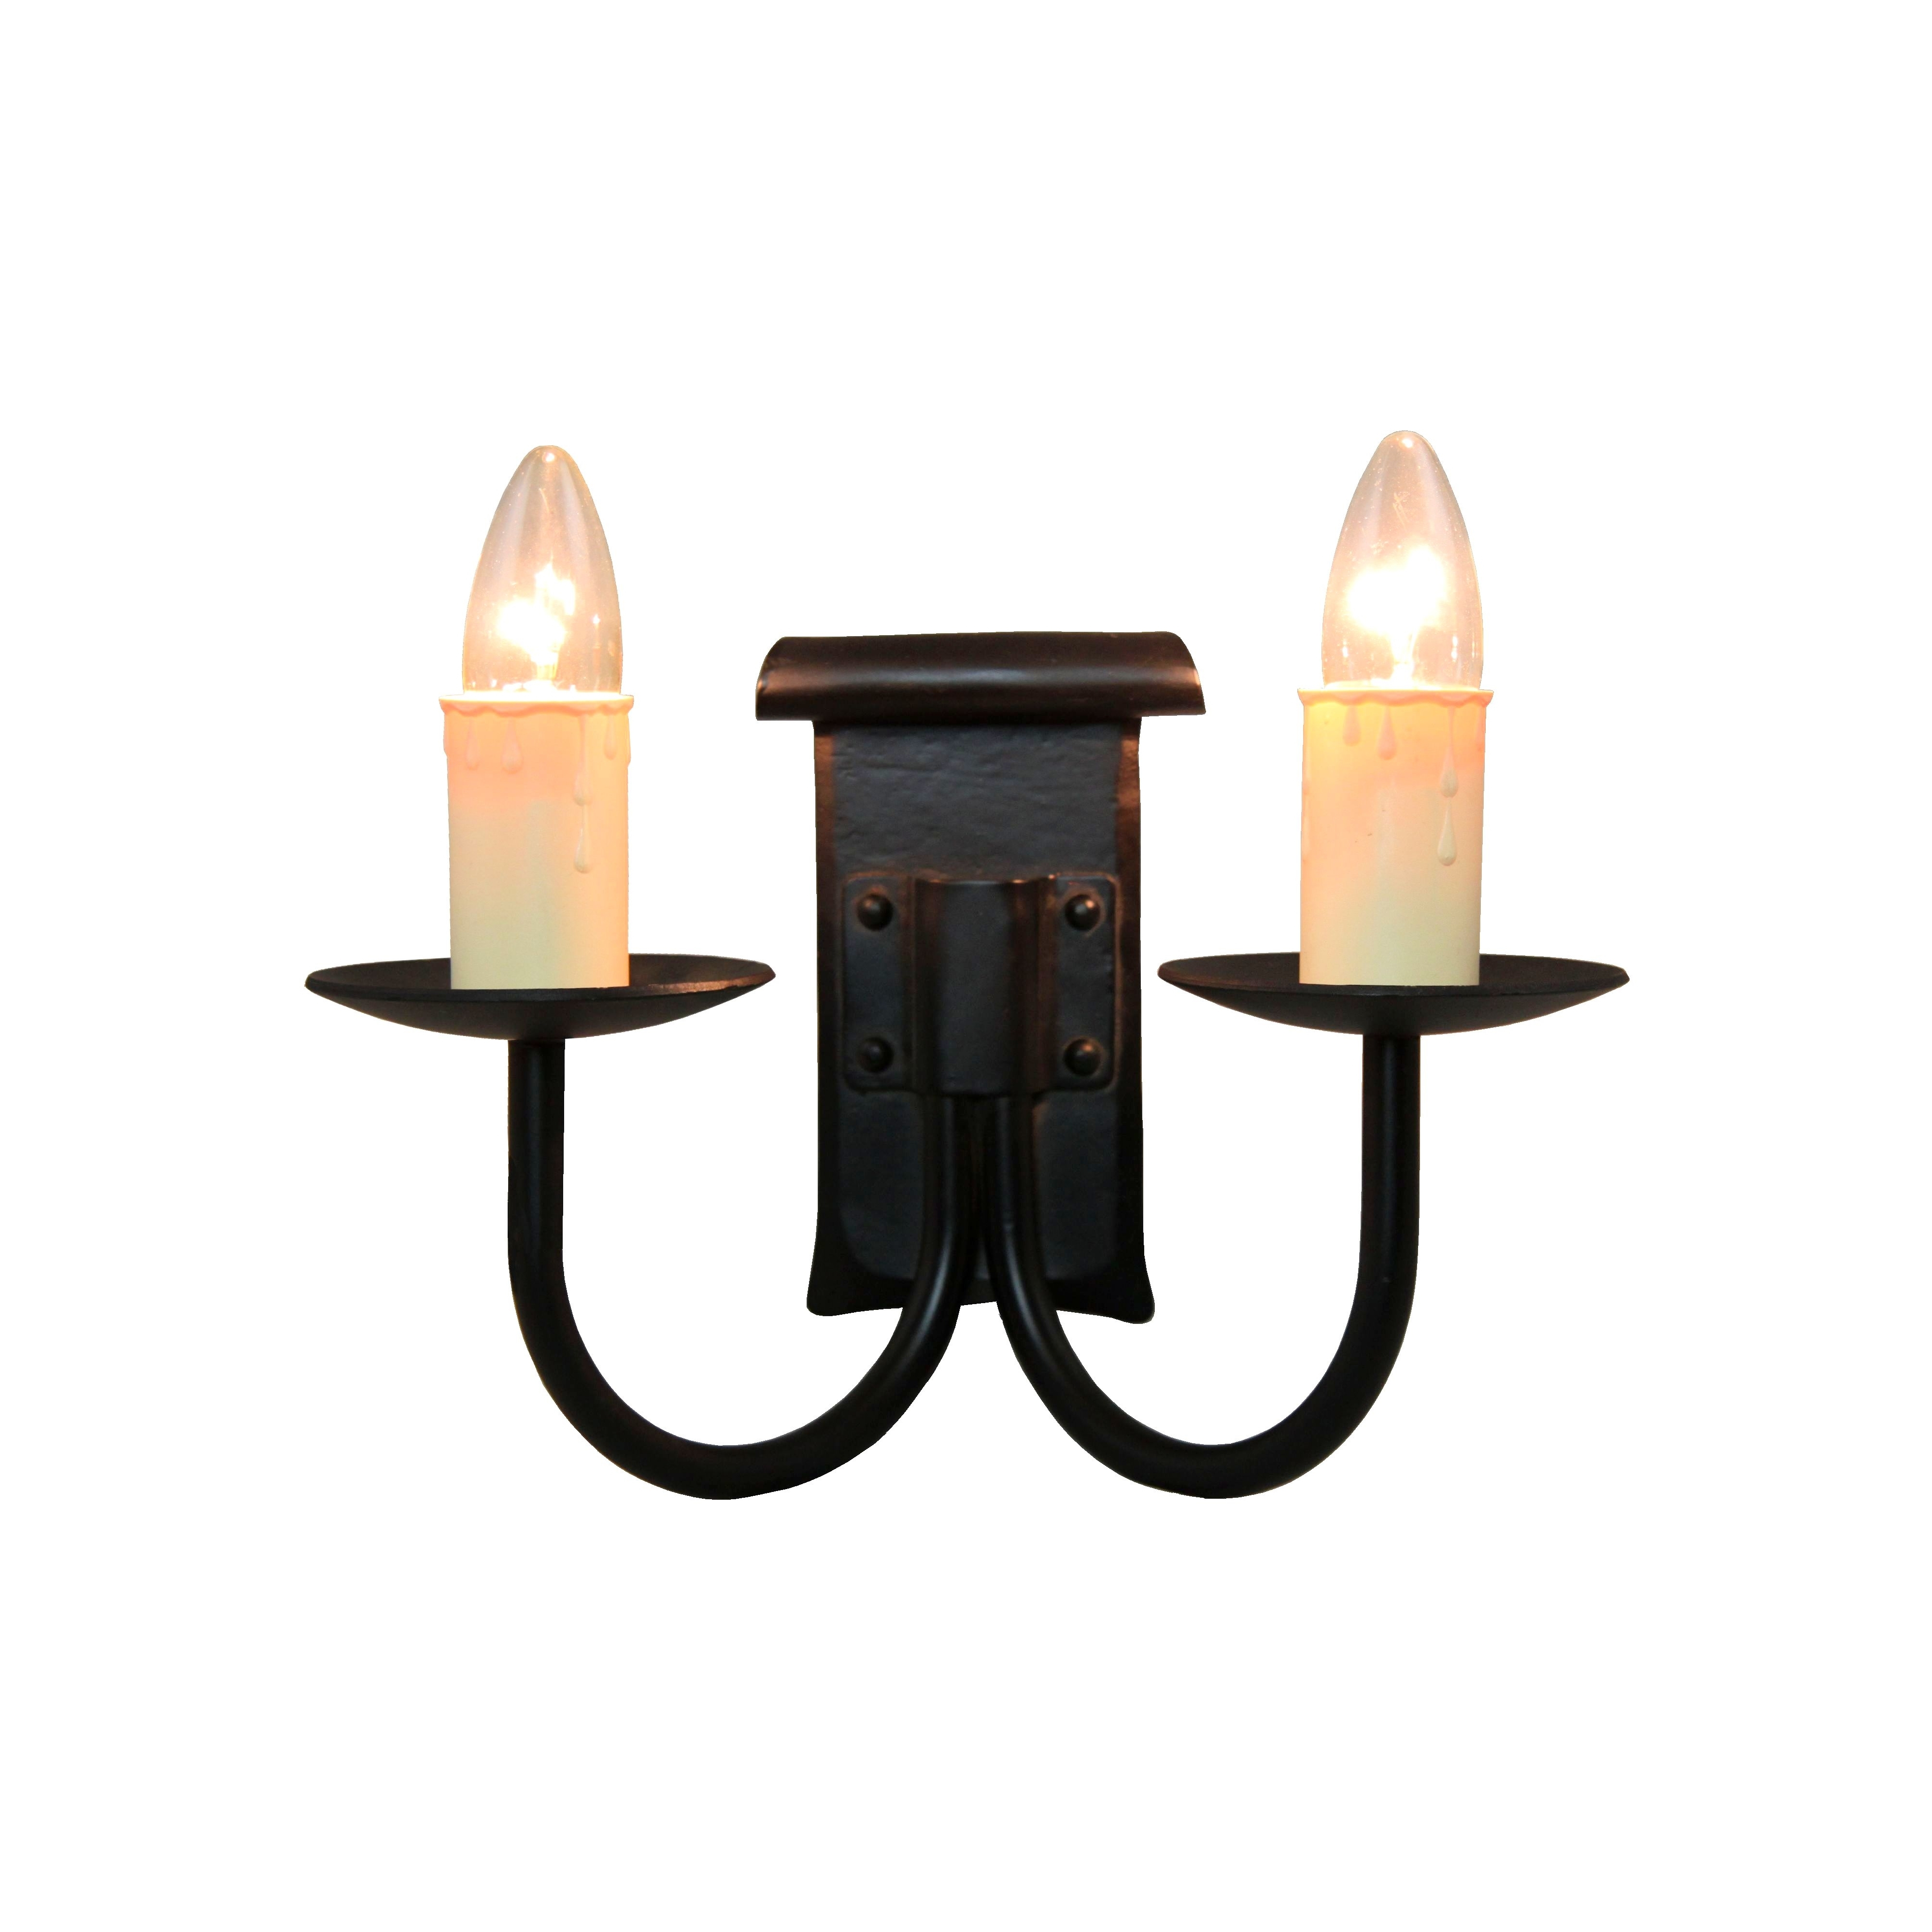 Candle Drips Wall Lights : Artisan Single or double arm wall lights